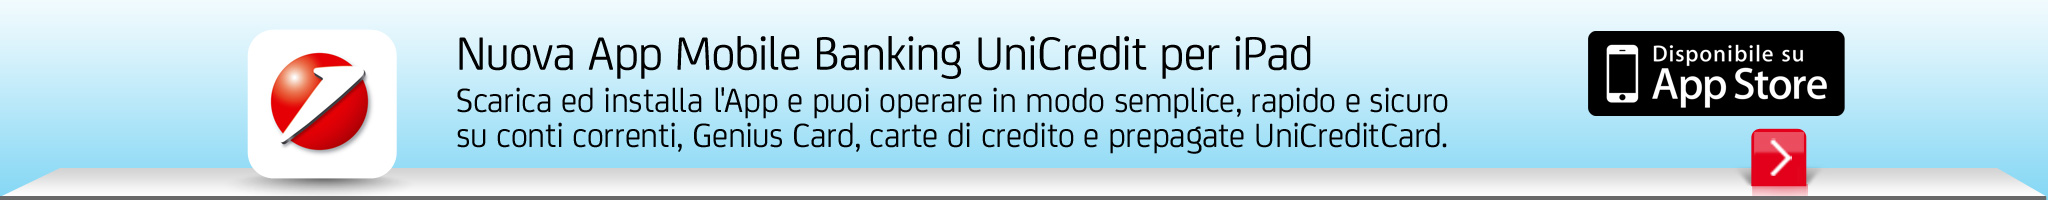 Nuova App Mobile Banking UniCredit per IPad